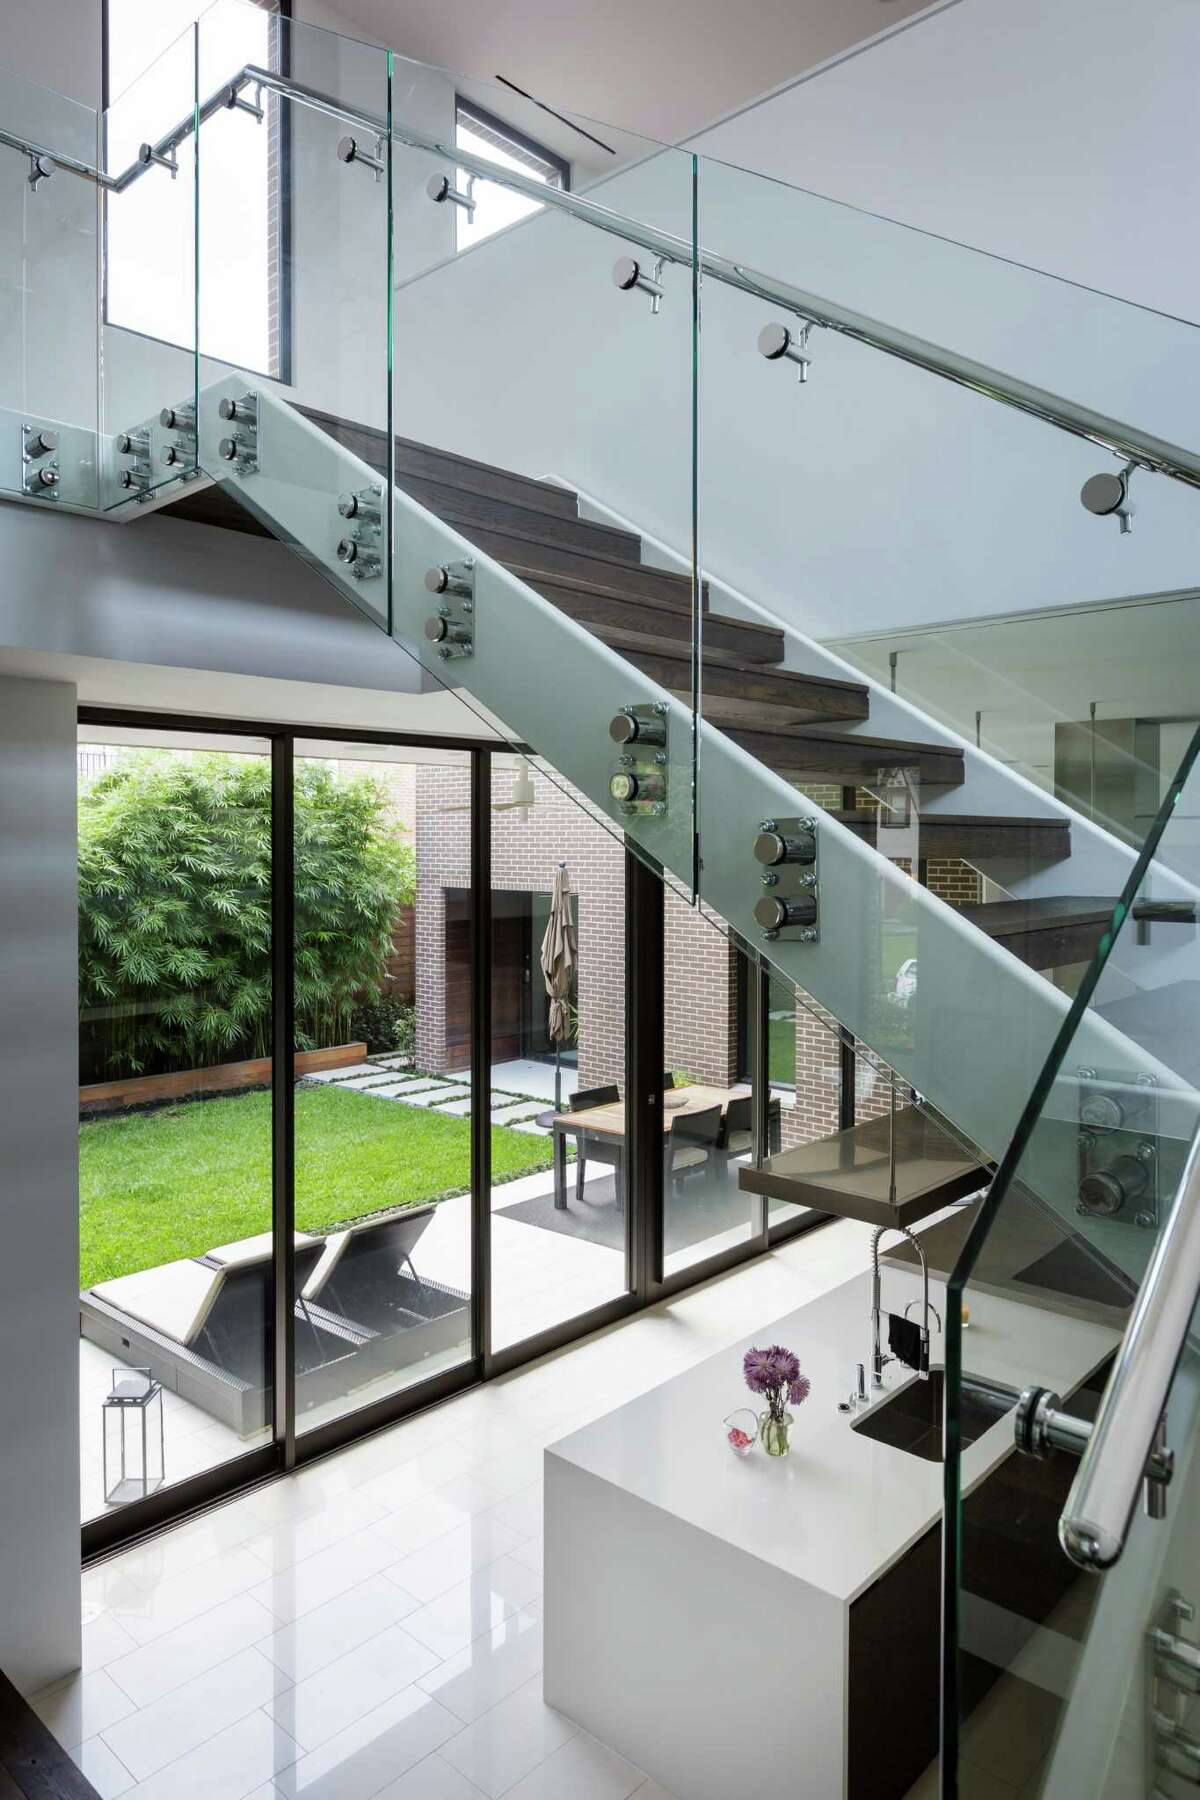 A stainless steel and wood tread staircase with glass railing contibutes to the open feeling of the layout. ( Michael Paulsen / Houston Chronicle )